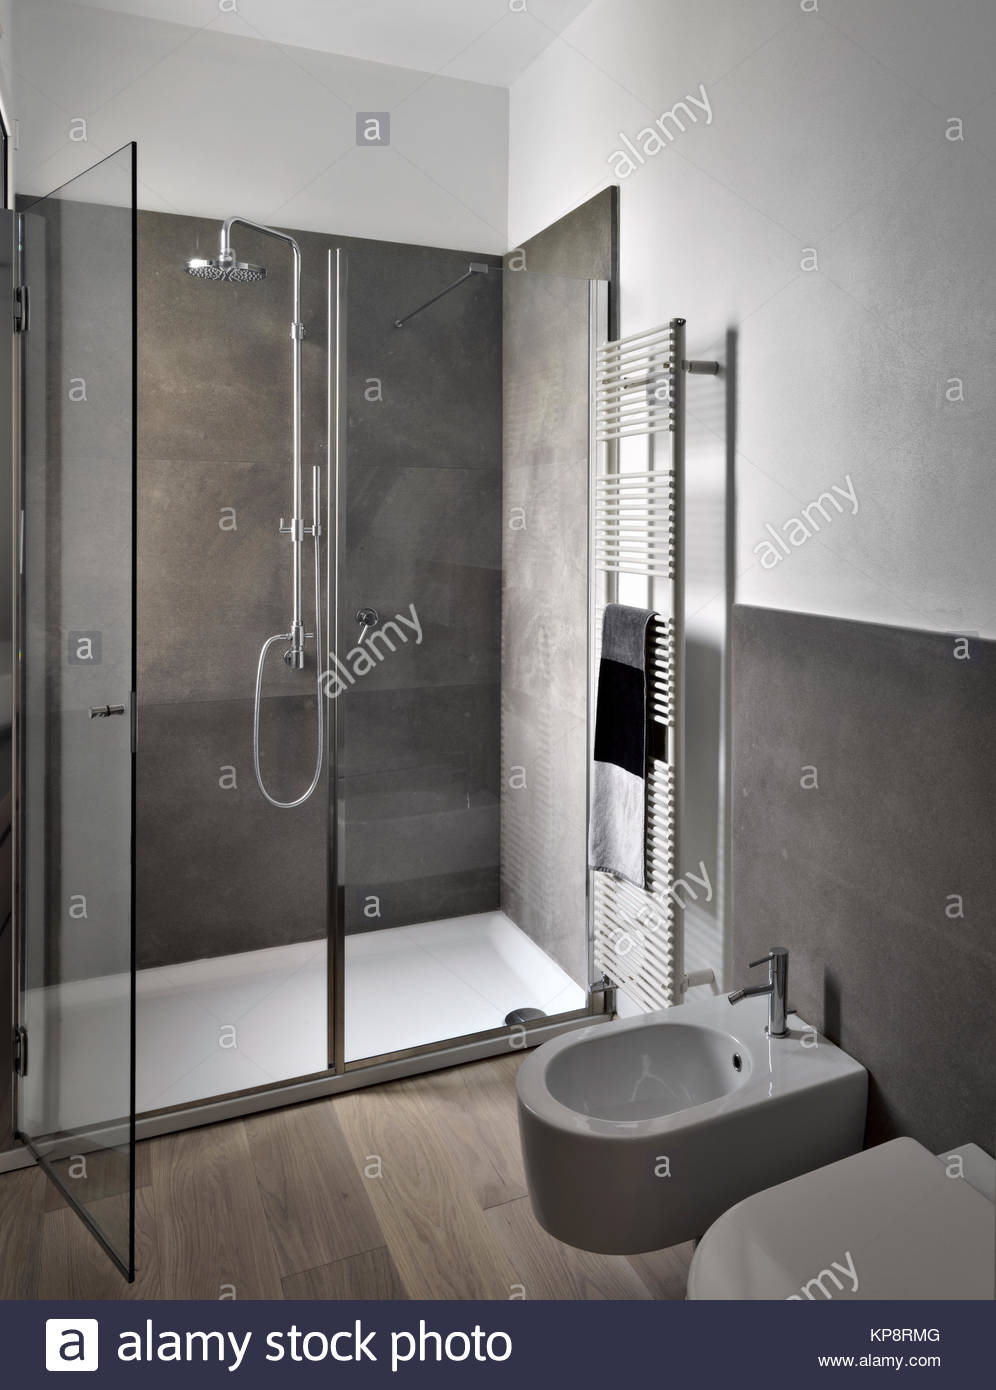 interior view of modern bahtroom with glass shower cubicle and wood ...